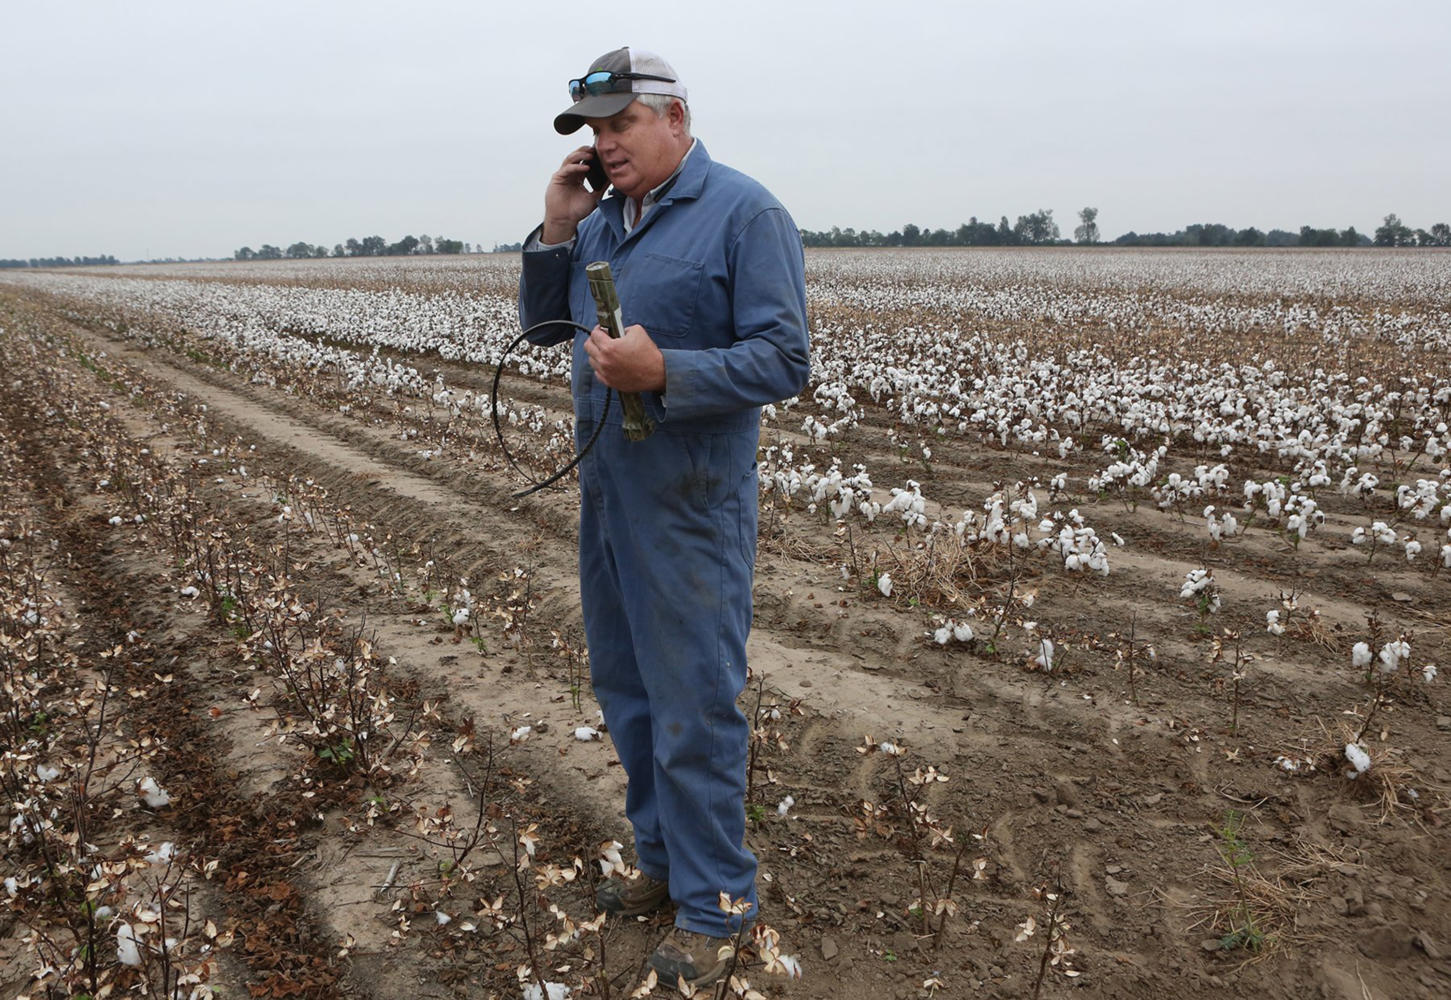 Farmer Jason Bean calls to locate a new belt for his cotton picker on Wednesday, Oct. 12, 2017, at his farm near Peach Orchard, Mo. Bean is busy harvesting his soybeans, rice, and cotton this month. The broken belt shut down his cotton picker for a short time until he got it replaced. The $49 belt is needed to keep the $800,000 cotton picker working. (J.B. Forbes/St. Louis Post-Dispatch/TNS)